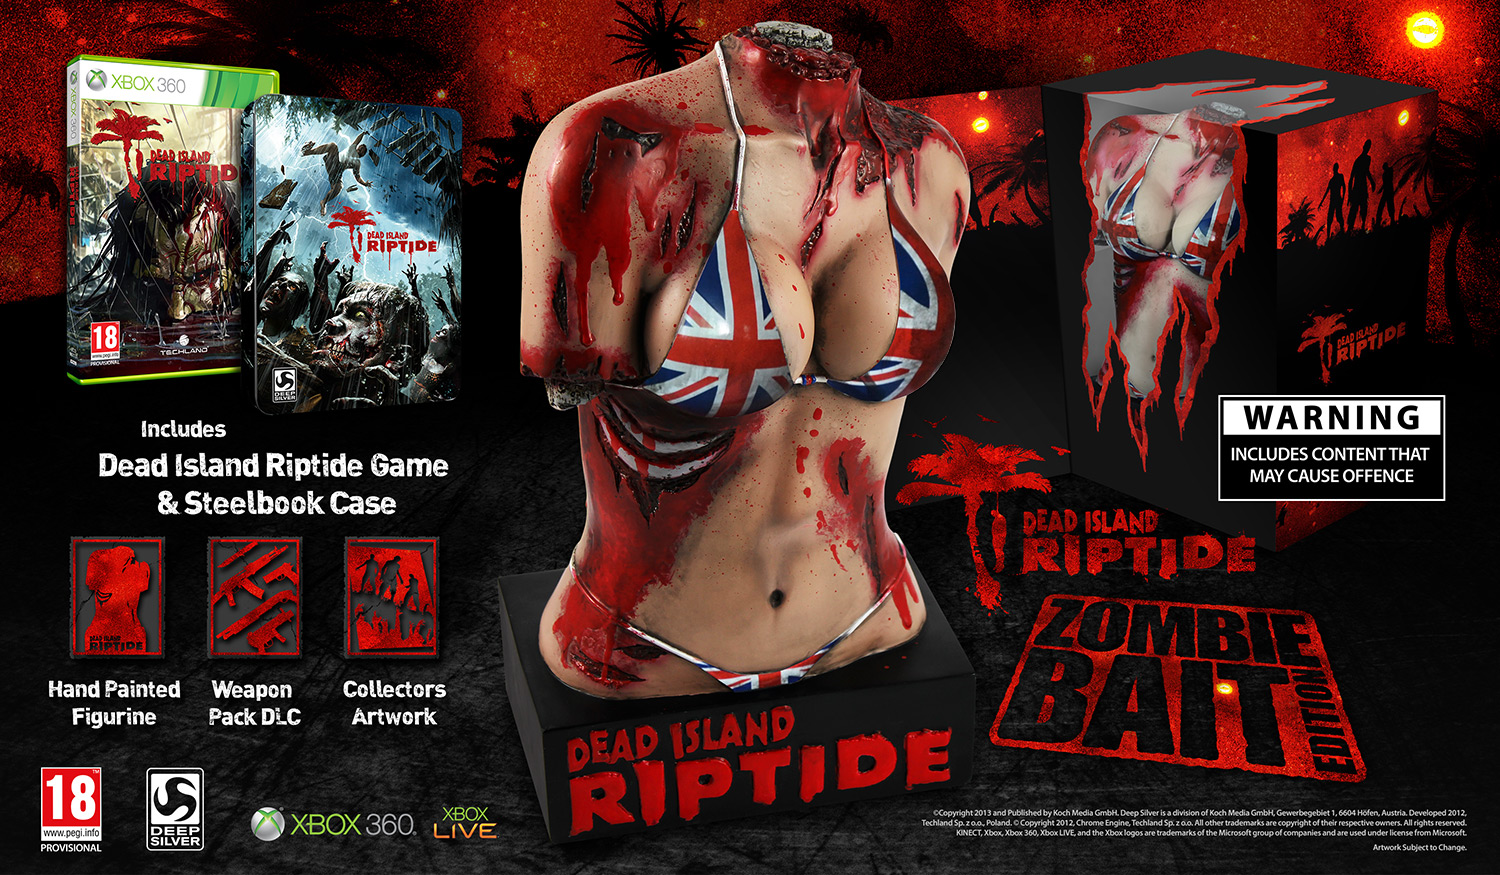 DeadIslandRiptide_ZombieBaitEdition